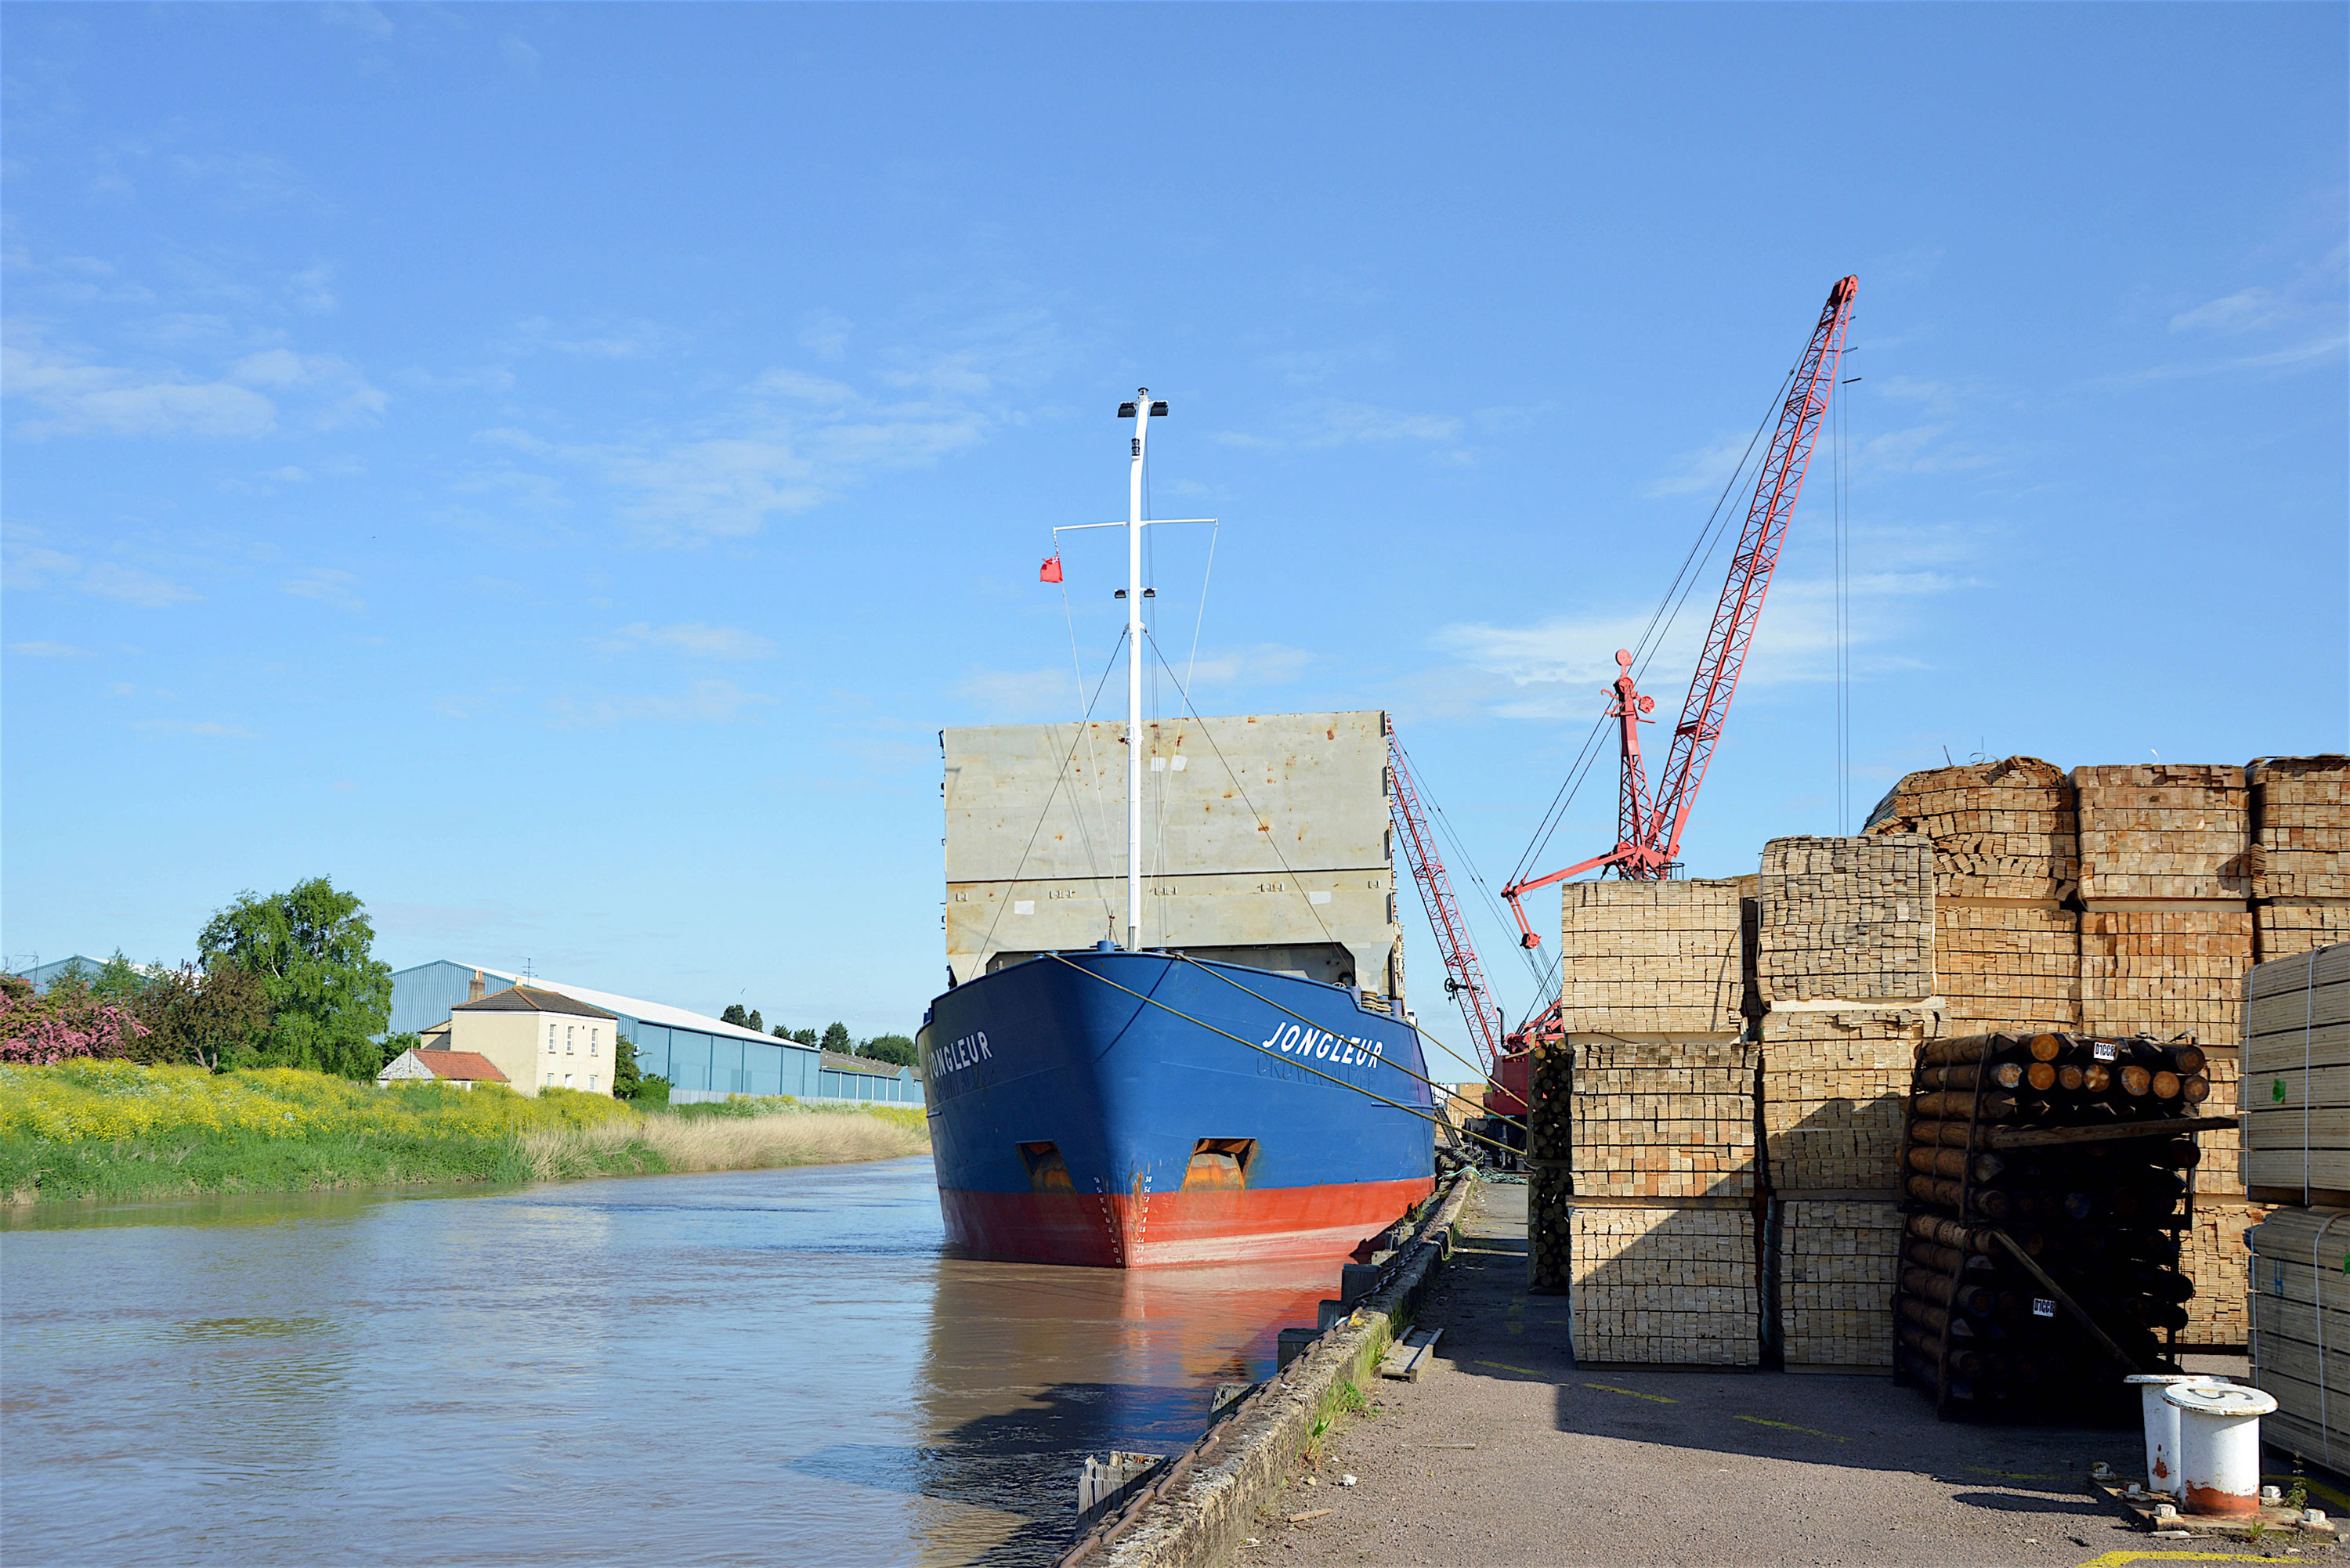 vessel at dock of Port of Wisbech with stacks of timber